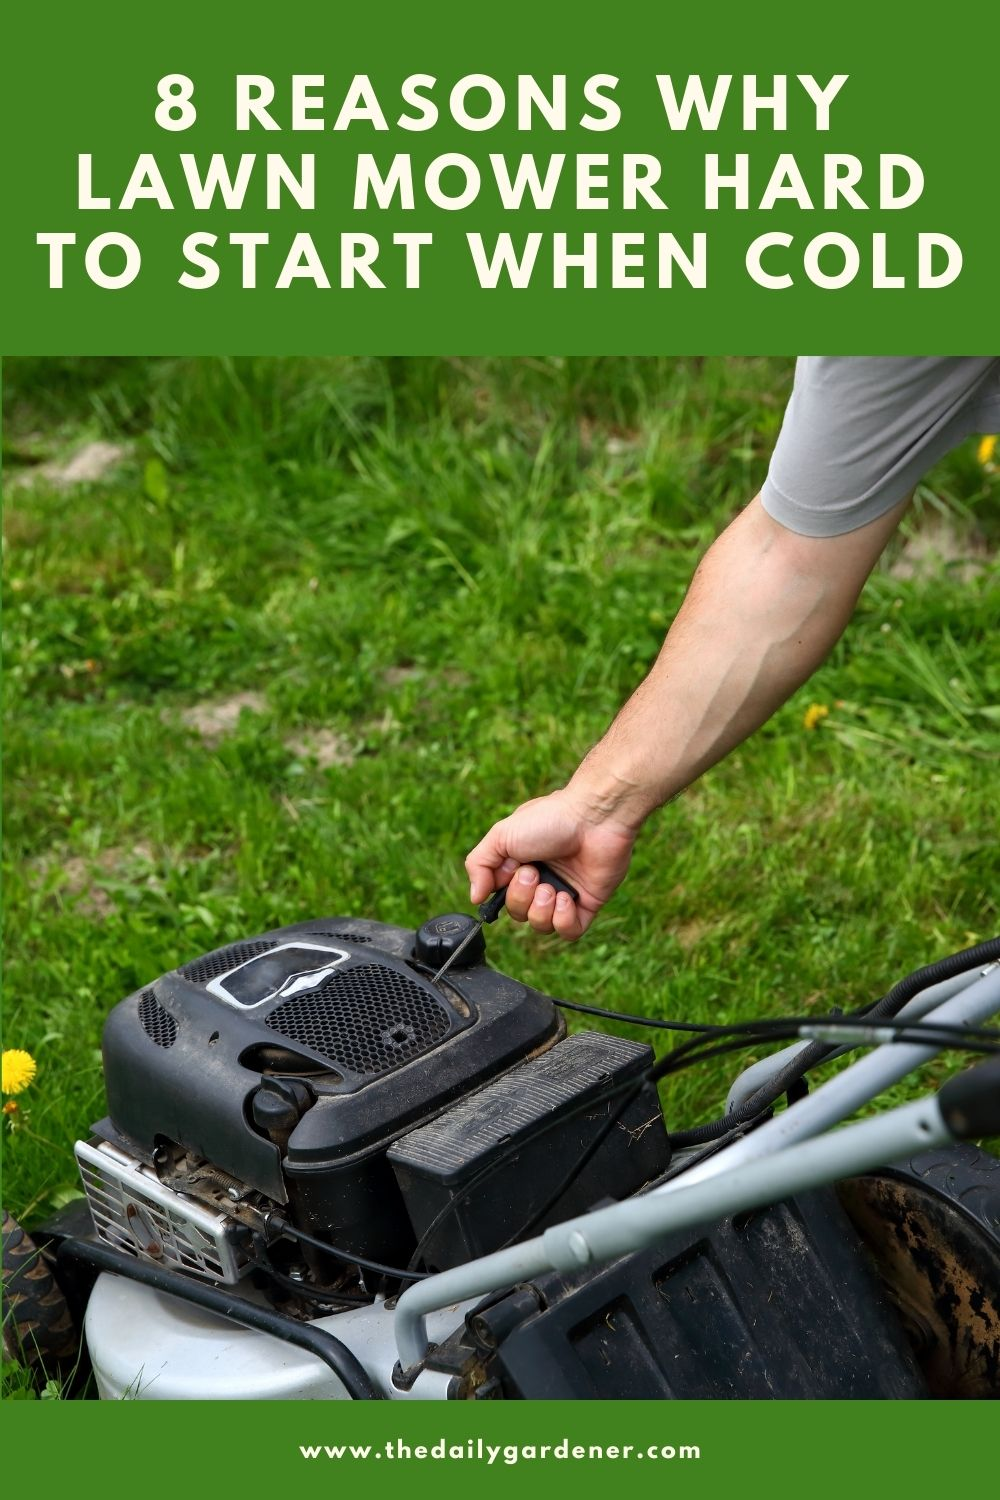 8 Reasons Why Lawn Mower Hard to Start When Cold 2